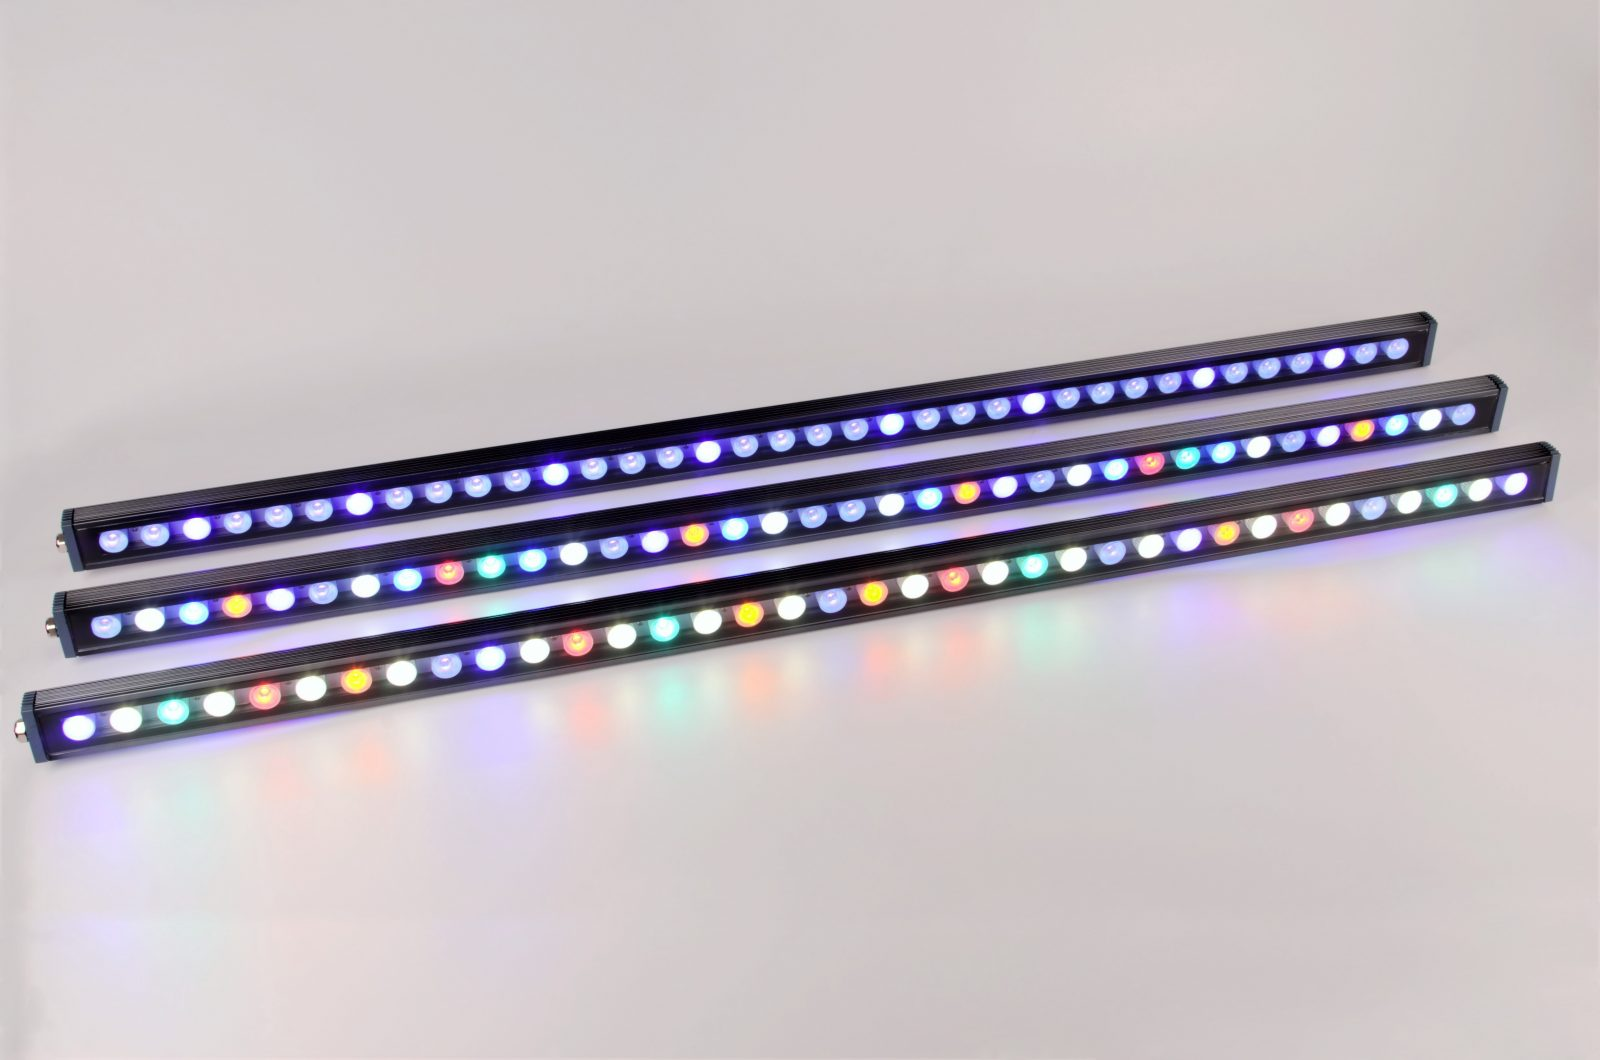 Striscia LED per barriera corallina